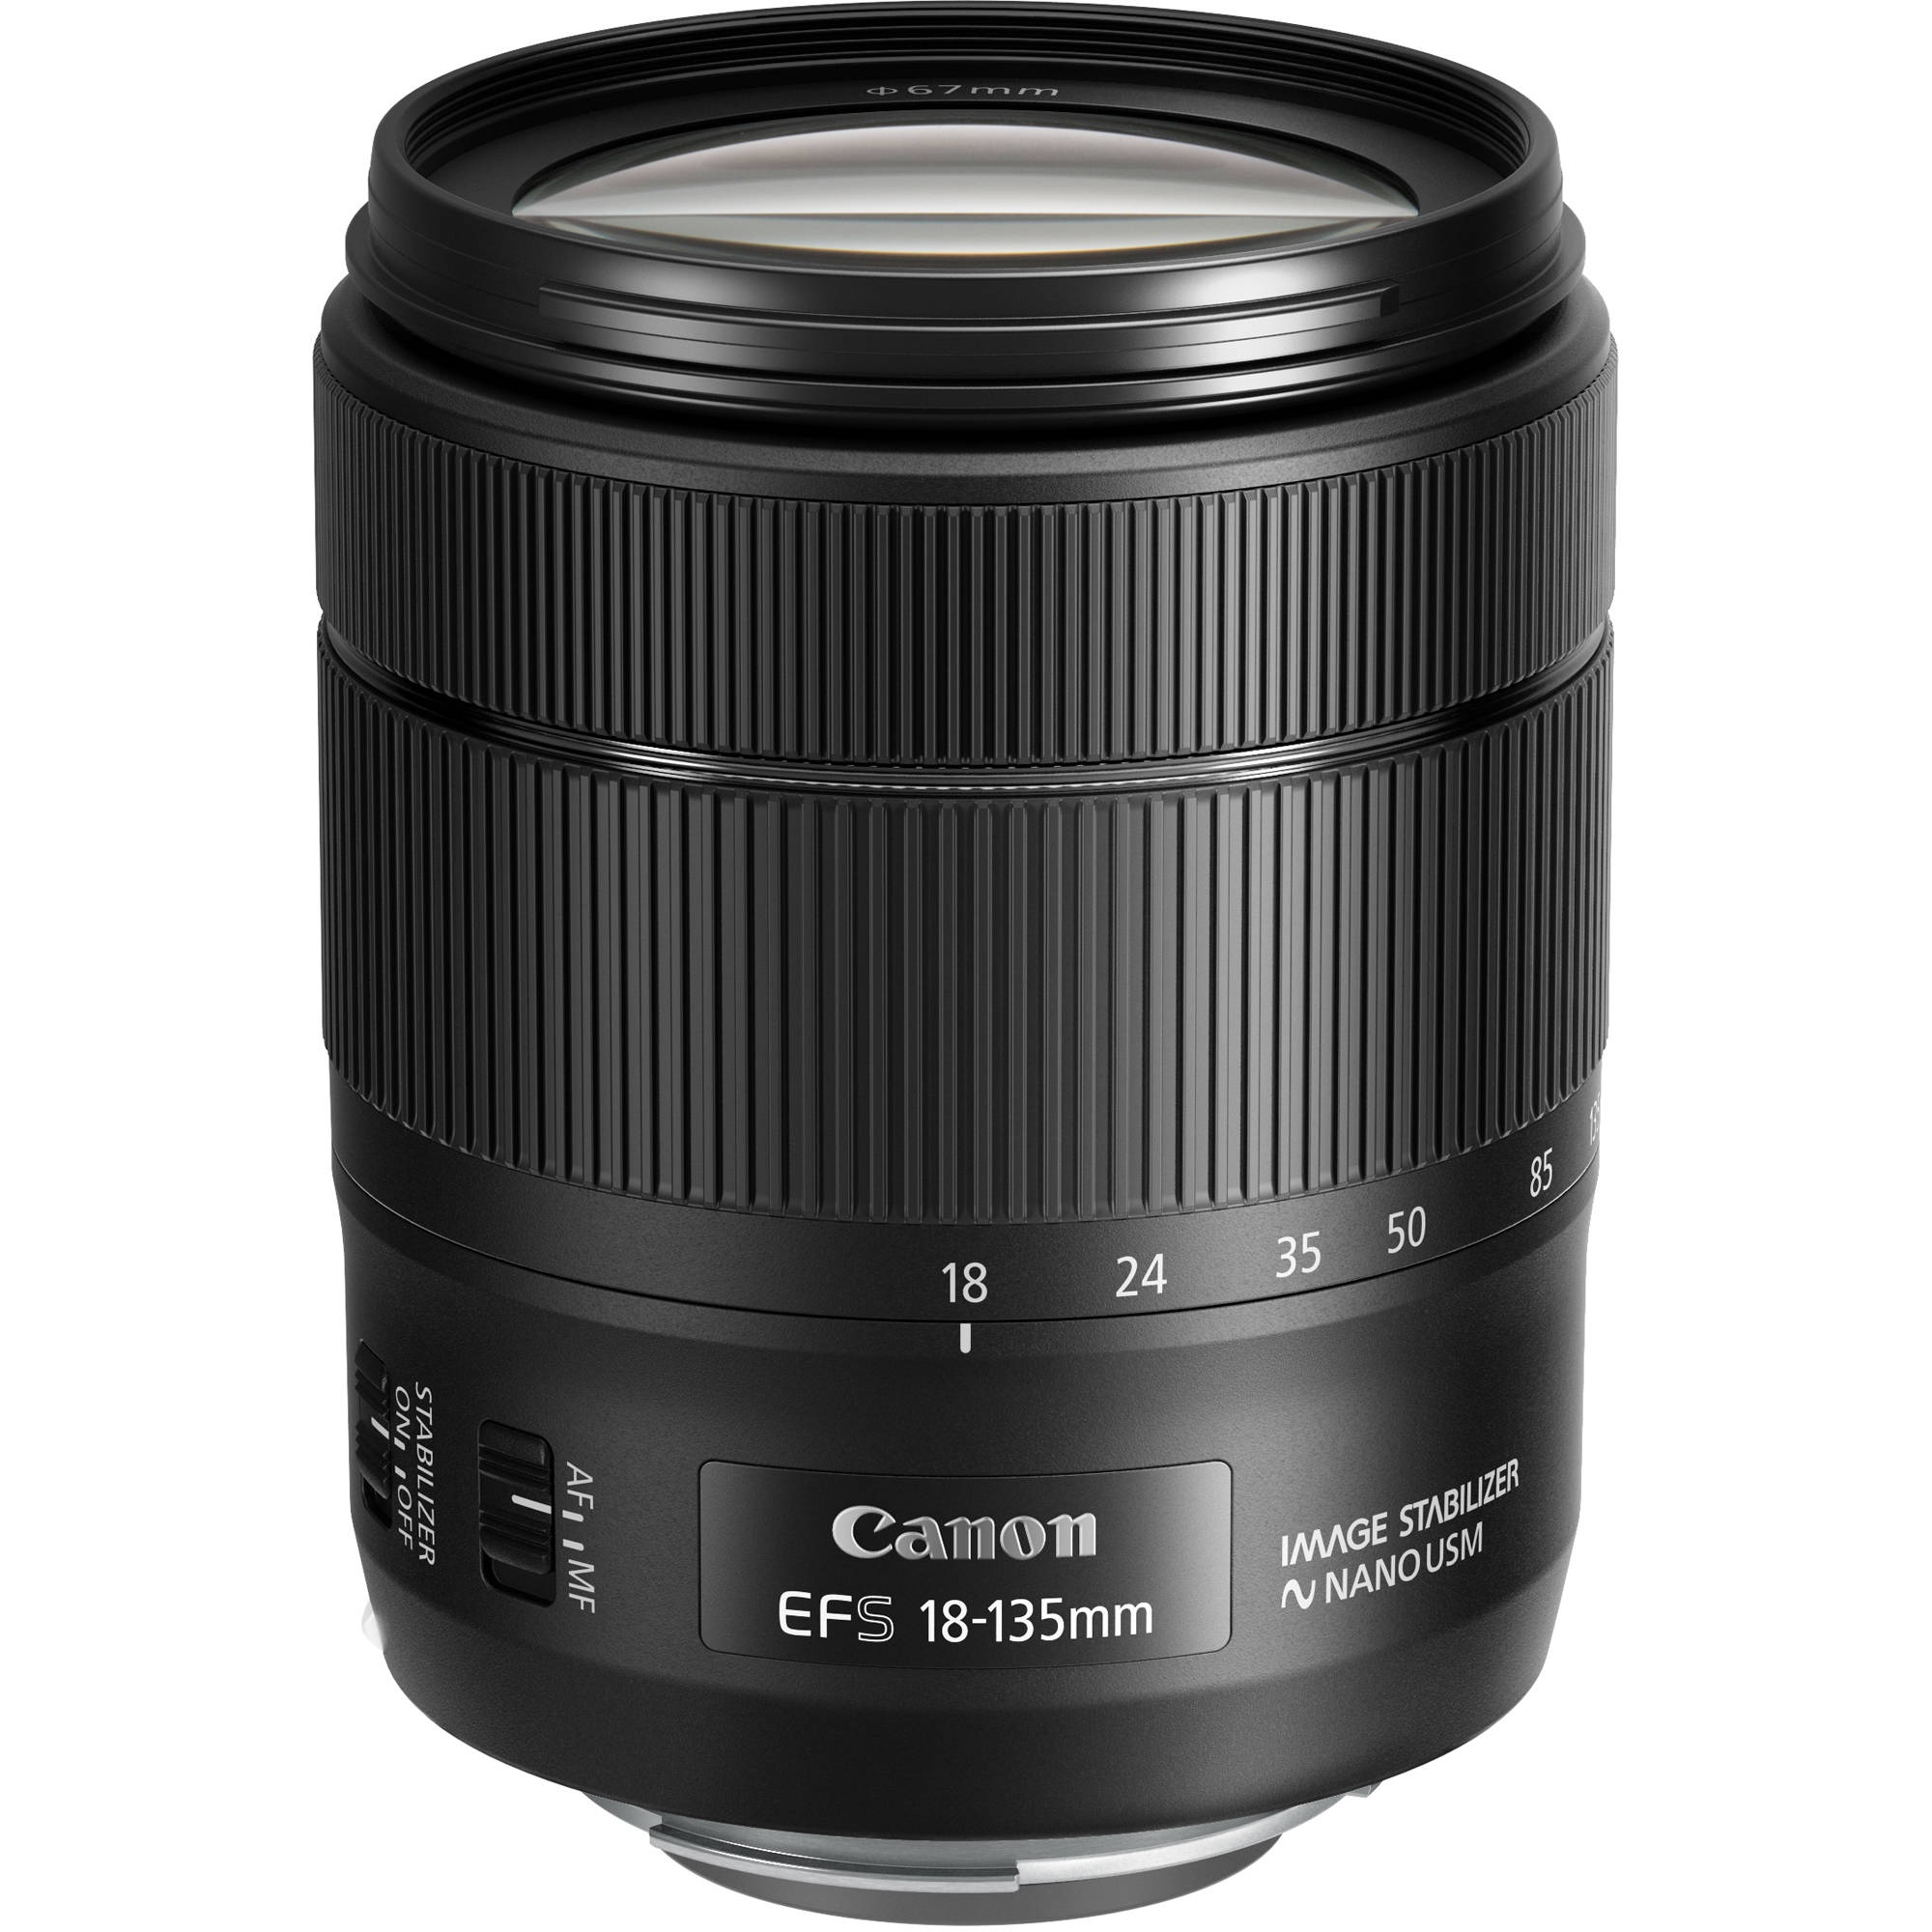 Compelling Canon 1276c002 Ef S 18 135mm F 3 5 5 6 Is 1225878 Canon Ef 40mm F2 8 Stm Vs Ef S 24mm Canon Ef S 10 22 Vs Ef S 10 18 dpreview Canon Ef Vs Ef S